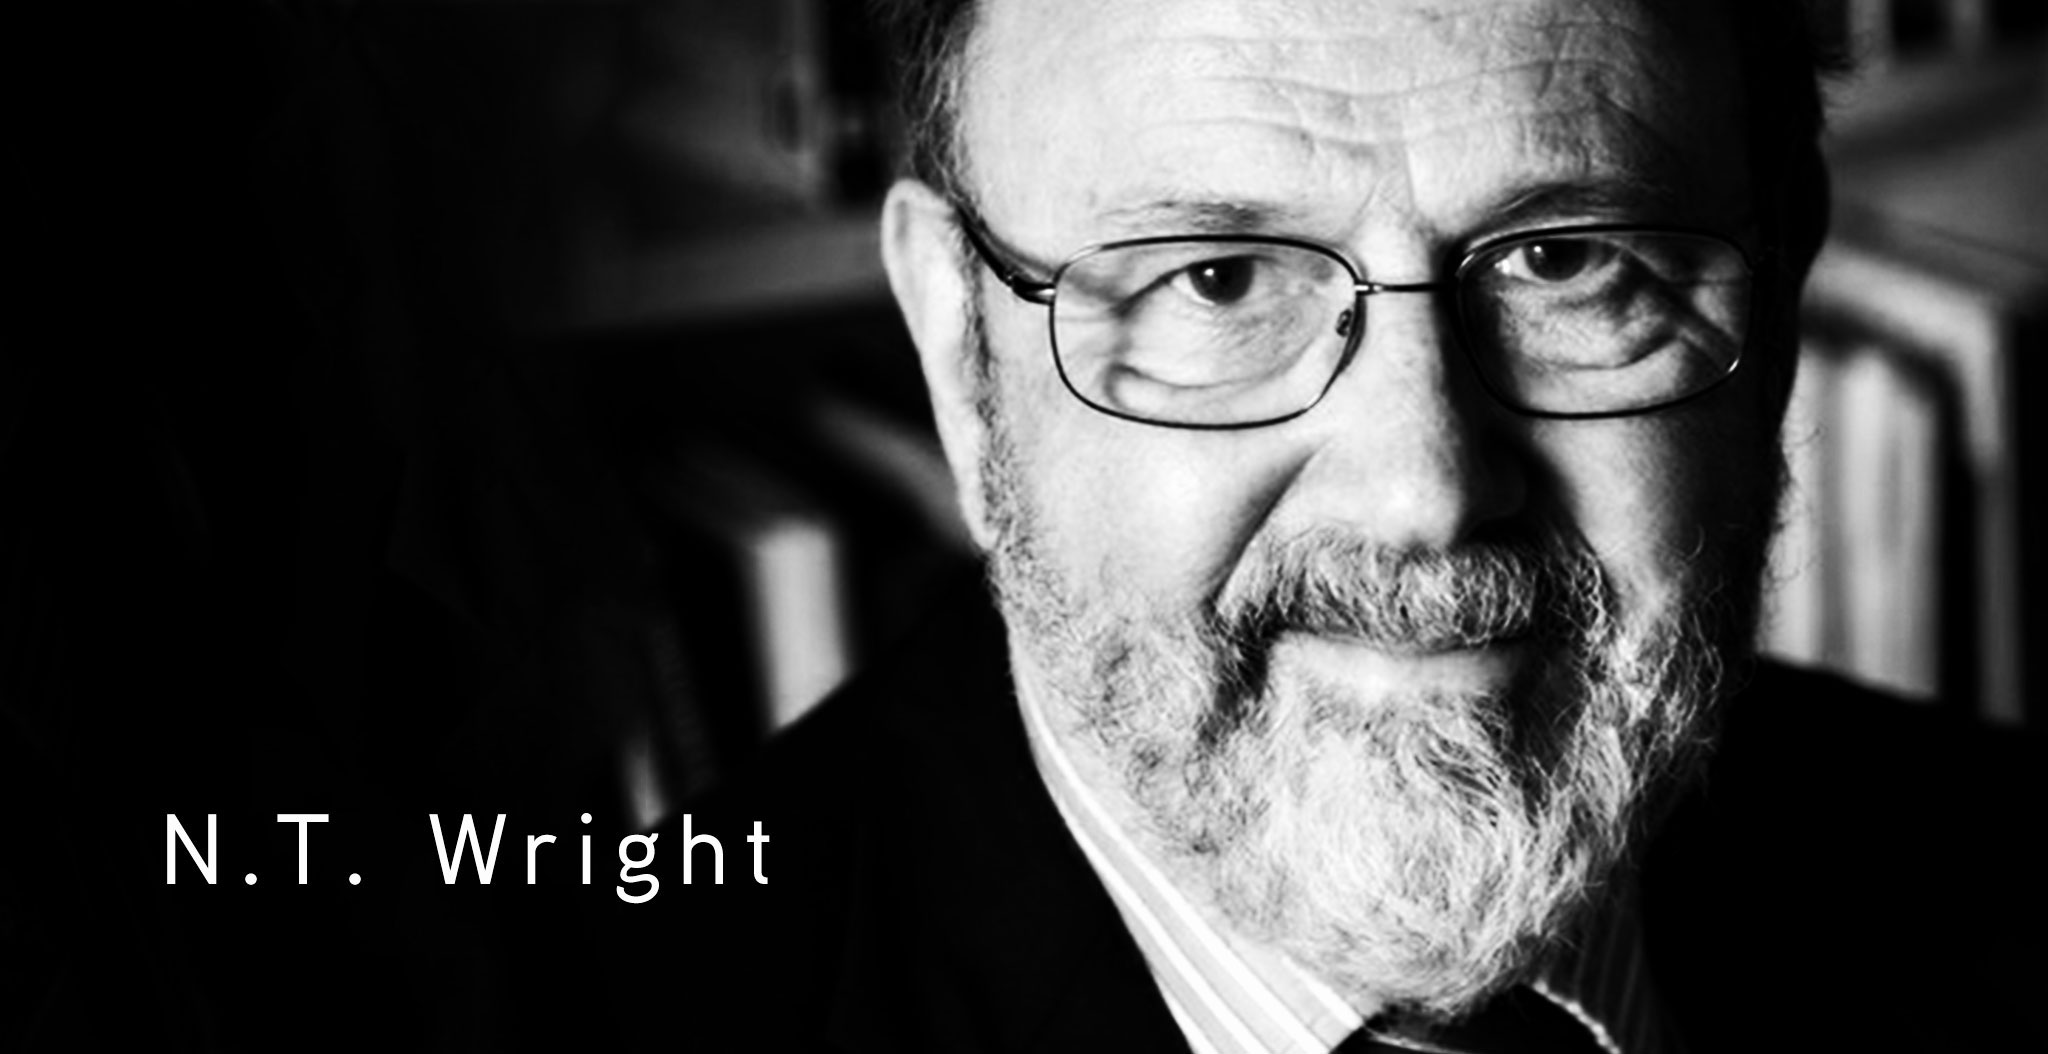 N. T. Wright banner image